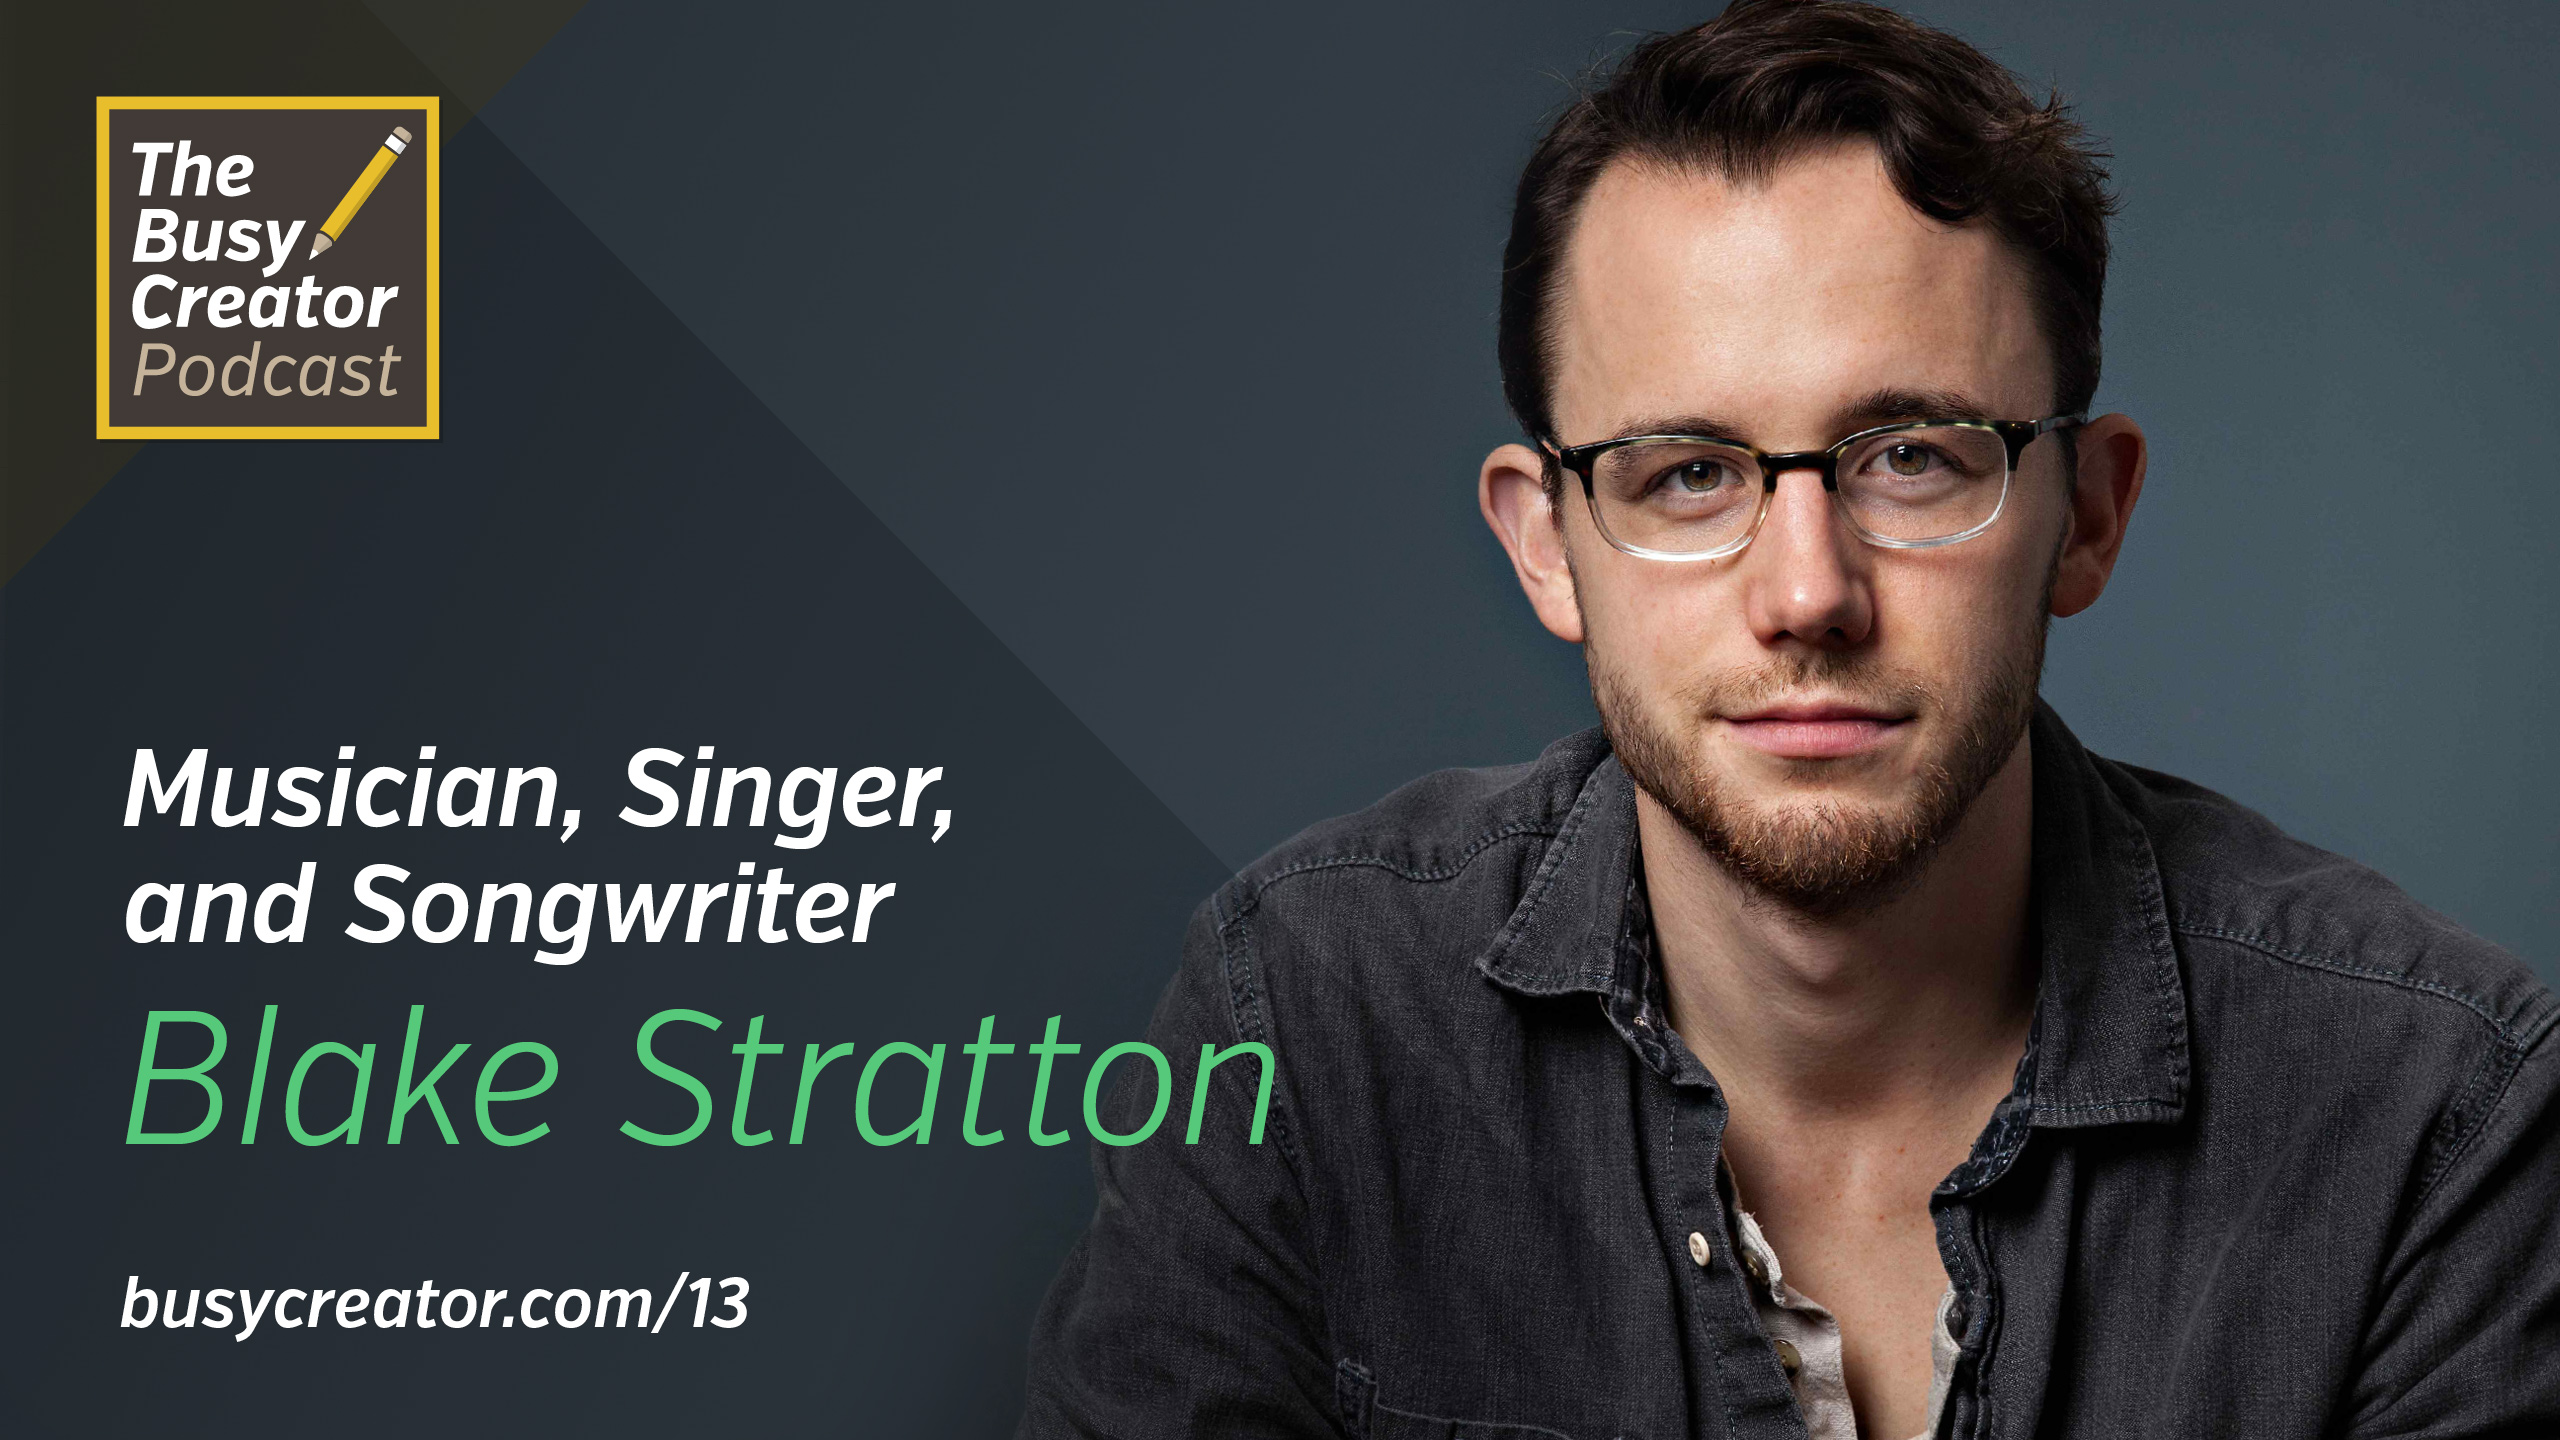 Musician, Singer, and Songwriter Blake Stratton Shares The Methods and Mindsets of the Music Biz